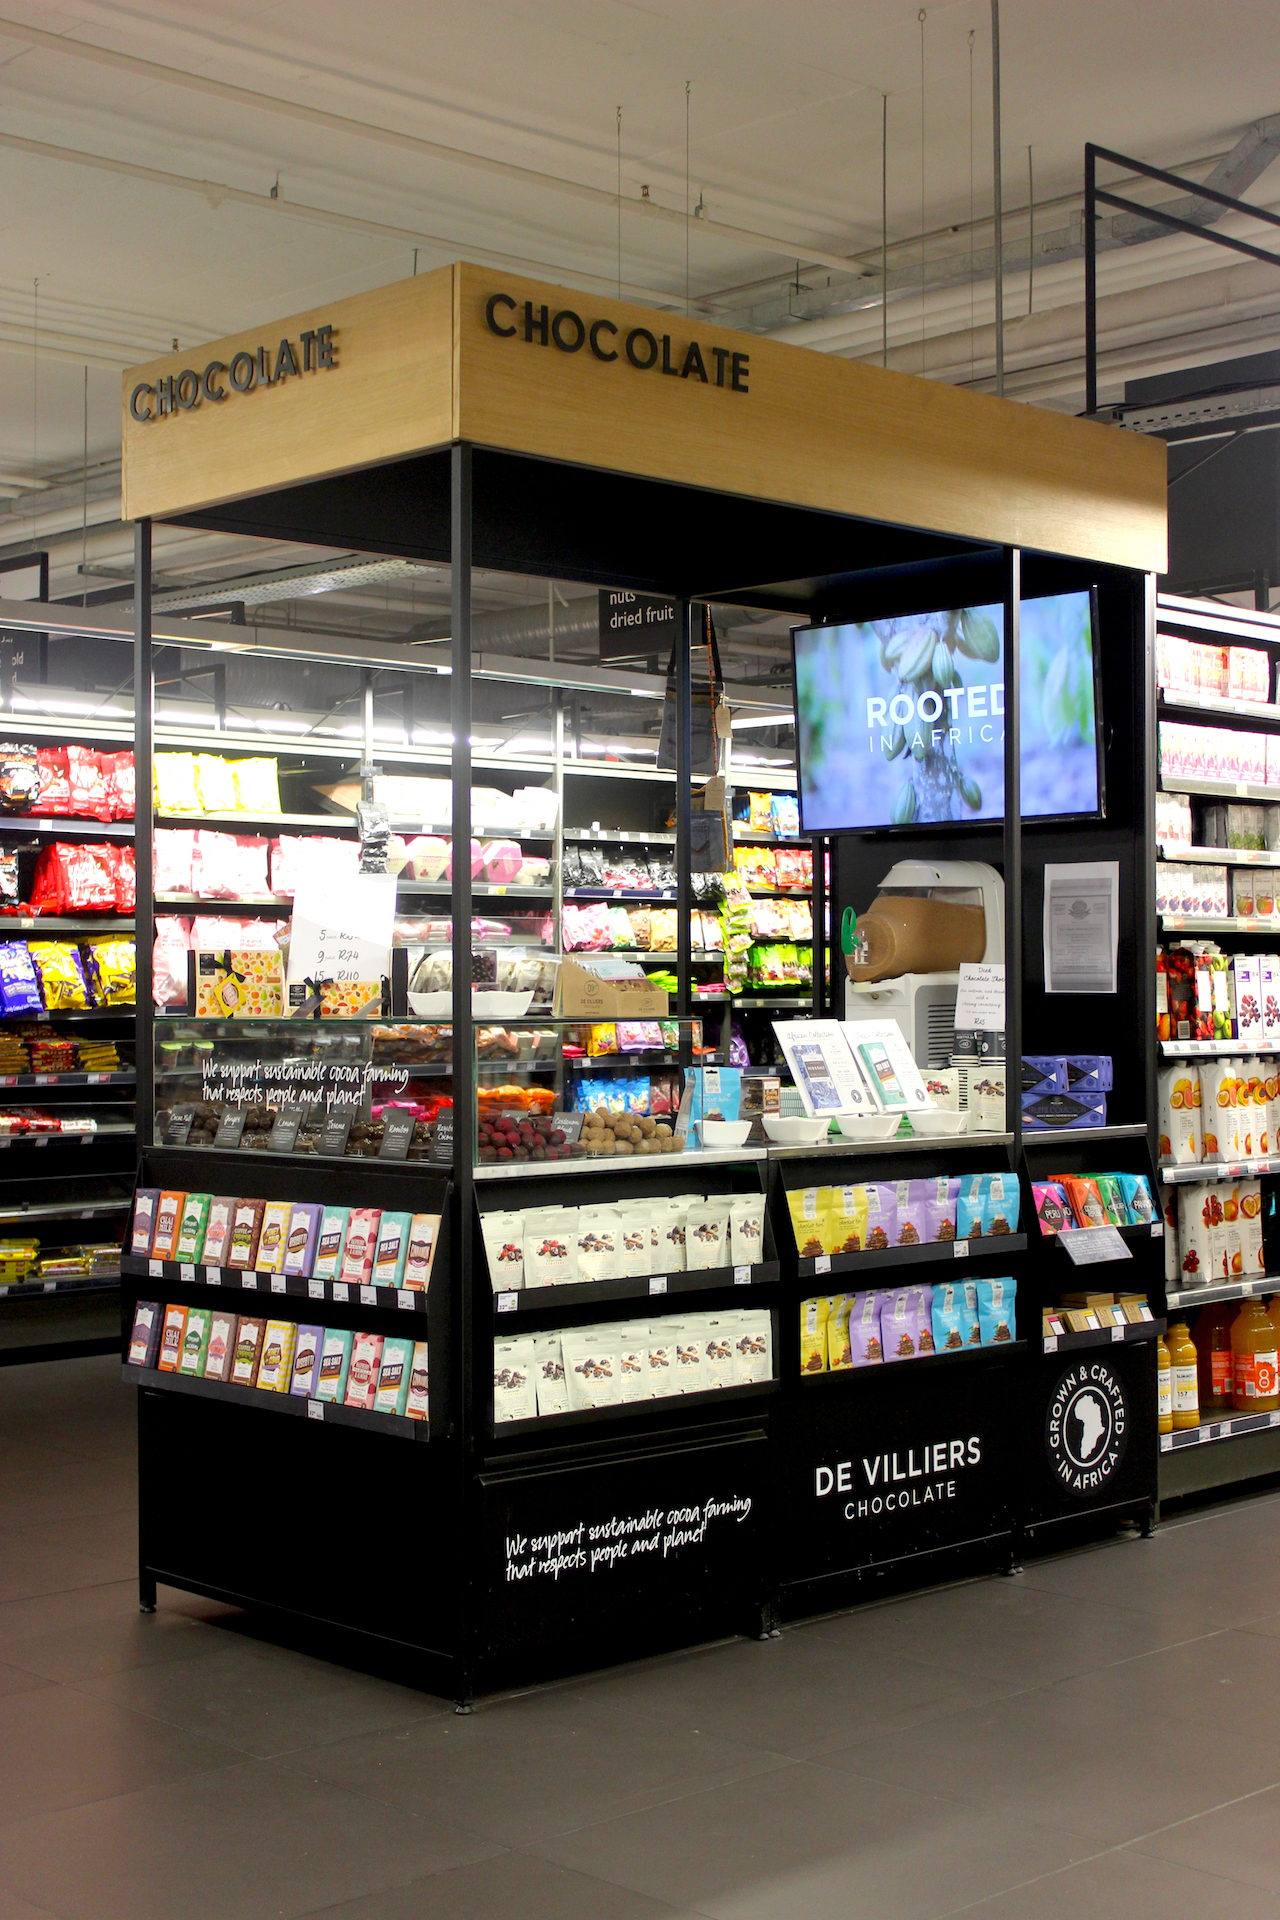 Discover The De Villiers Chocolate Pod At Woolworths